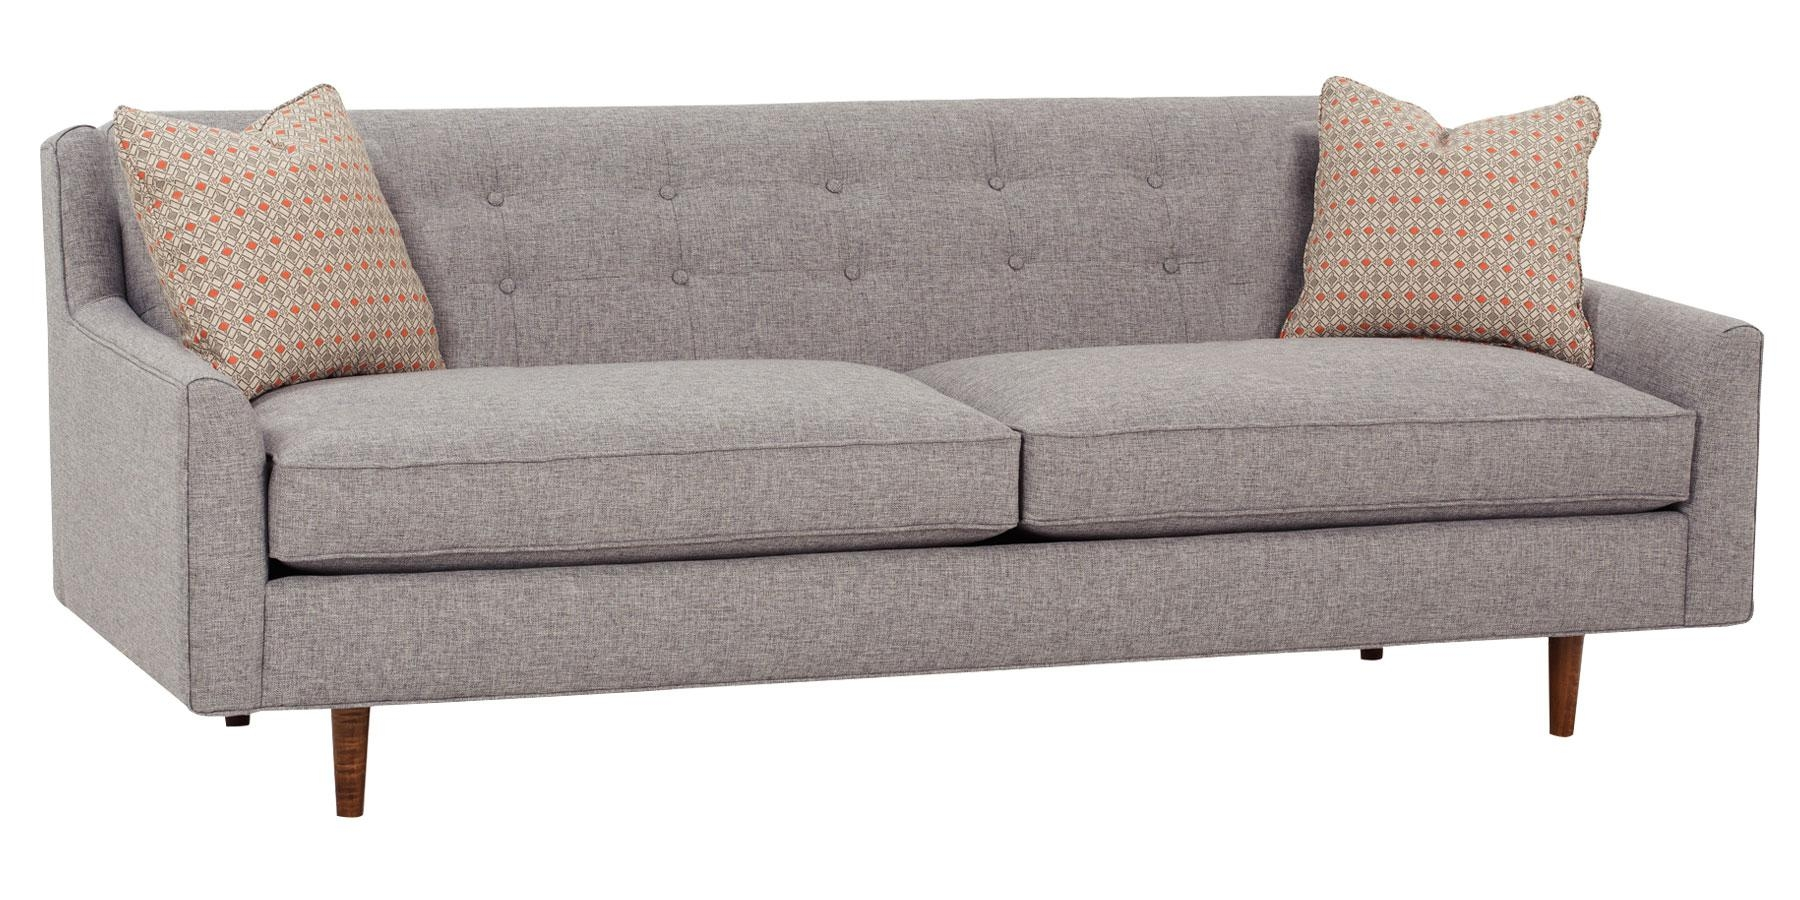 danish style sofa bed uk couch sectional furniture connector joint snap alligator 20 best ideas modern sofas